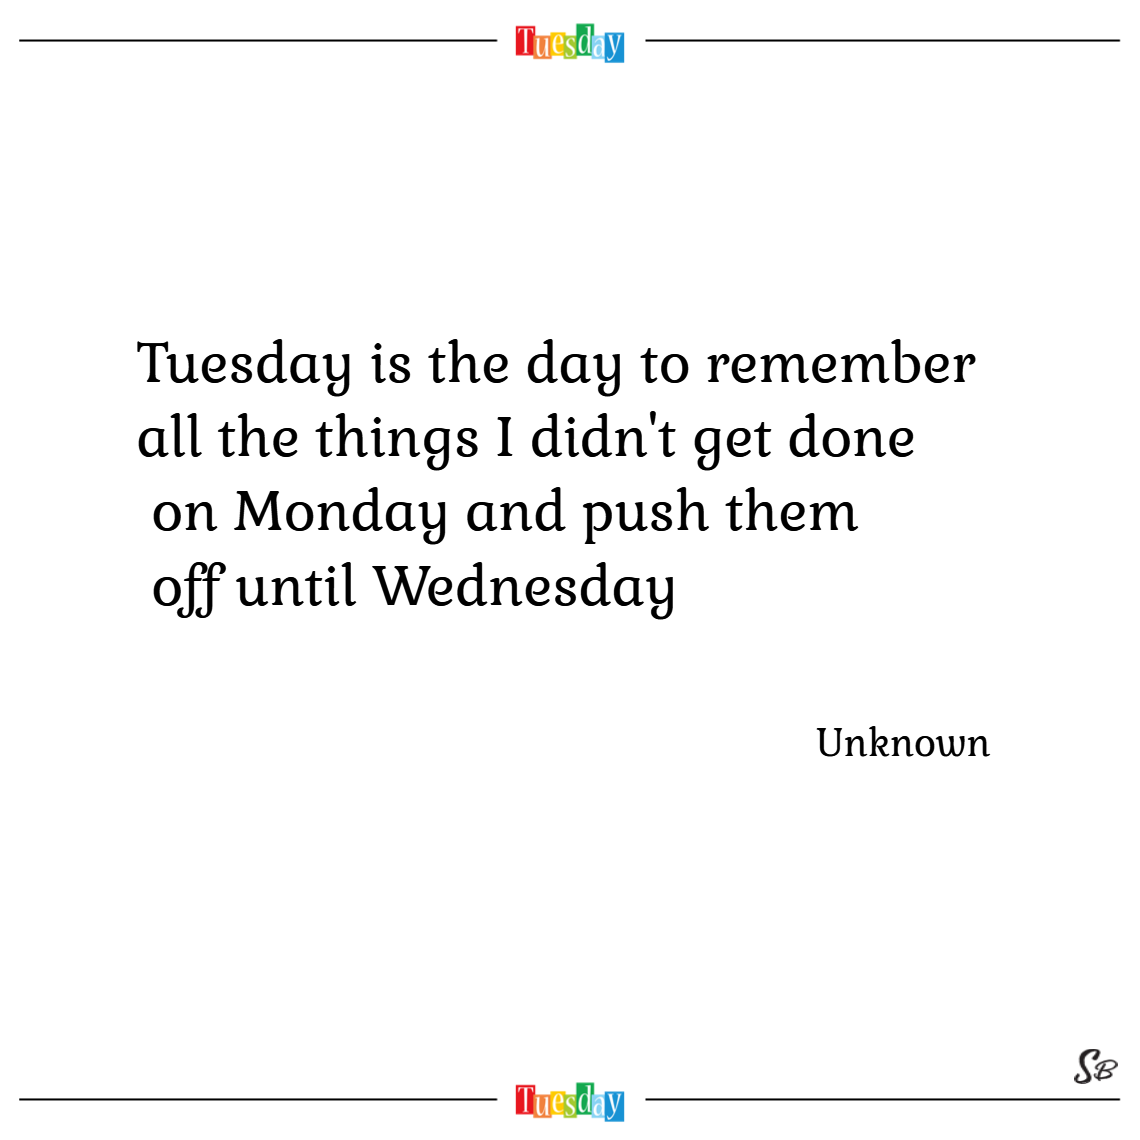 Tuesday is the day to remember all the things i didn't get done on monday and push them off until wednesday. – unknown